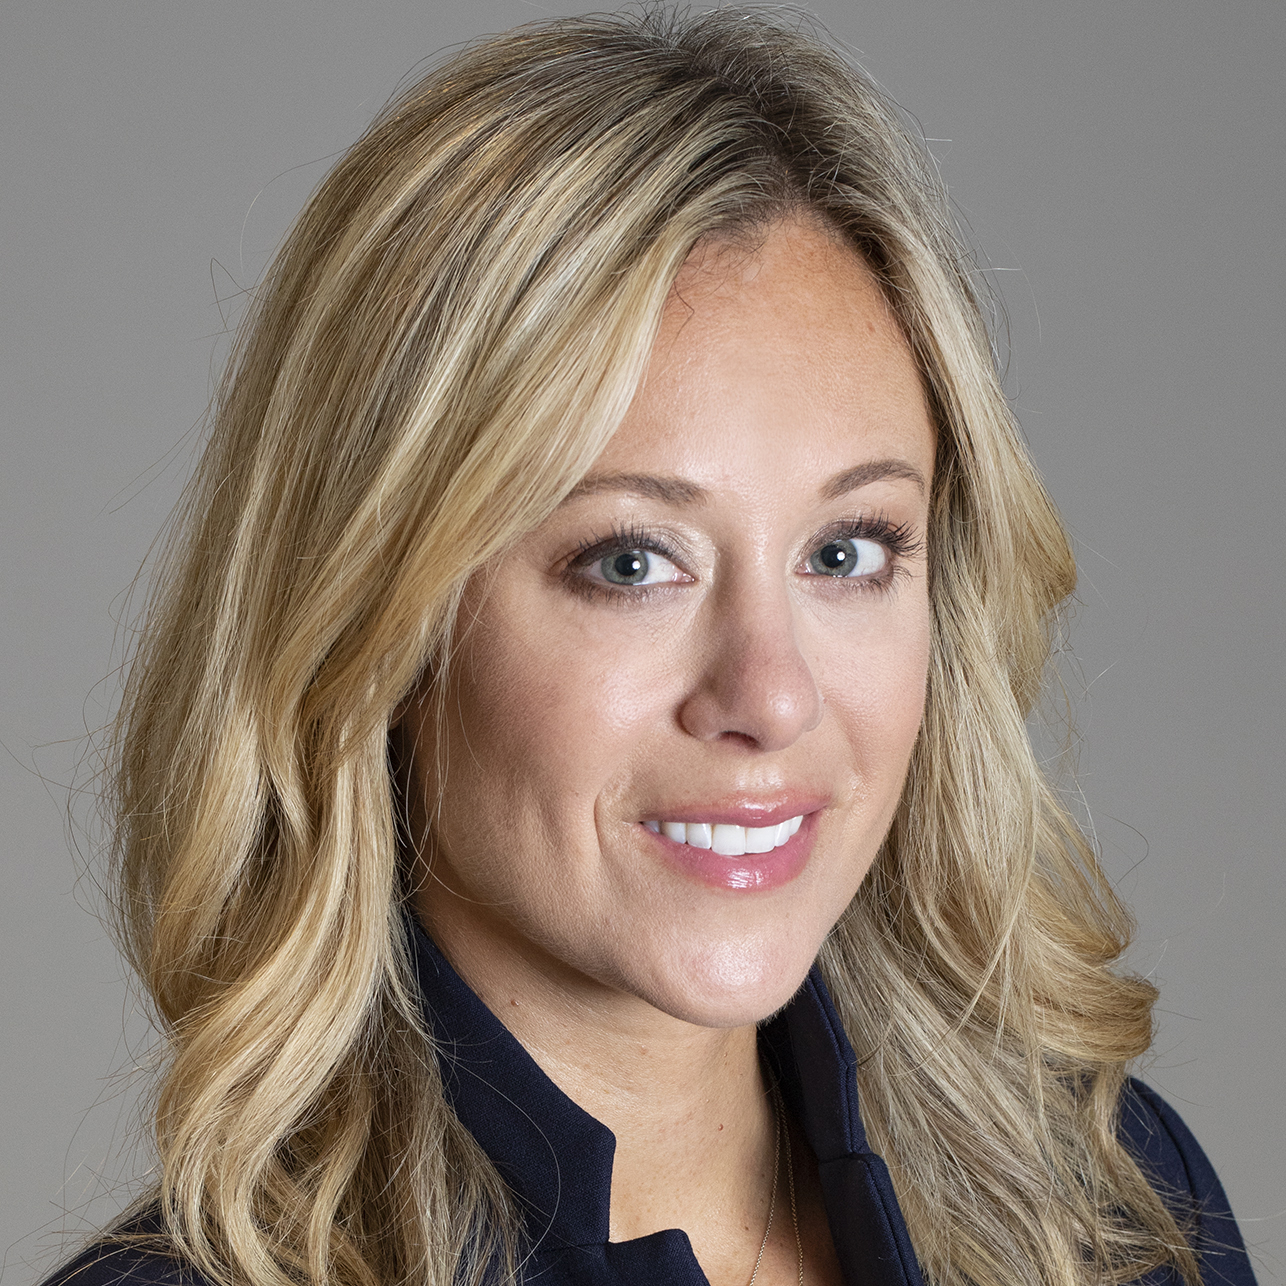 Cristina Desmond - Vice President, National Accounts Retail, Breakthru Beverage Group